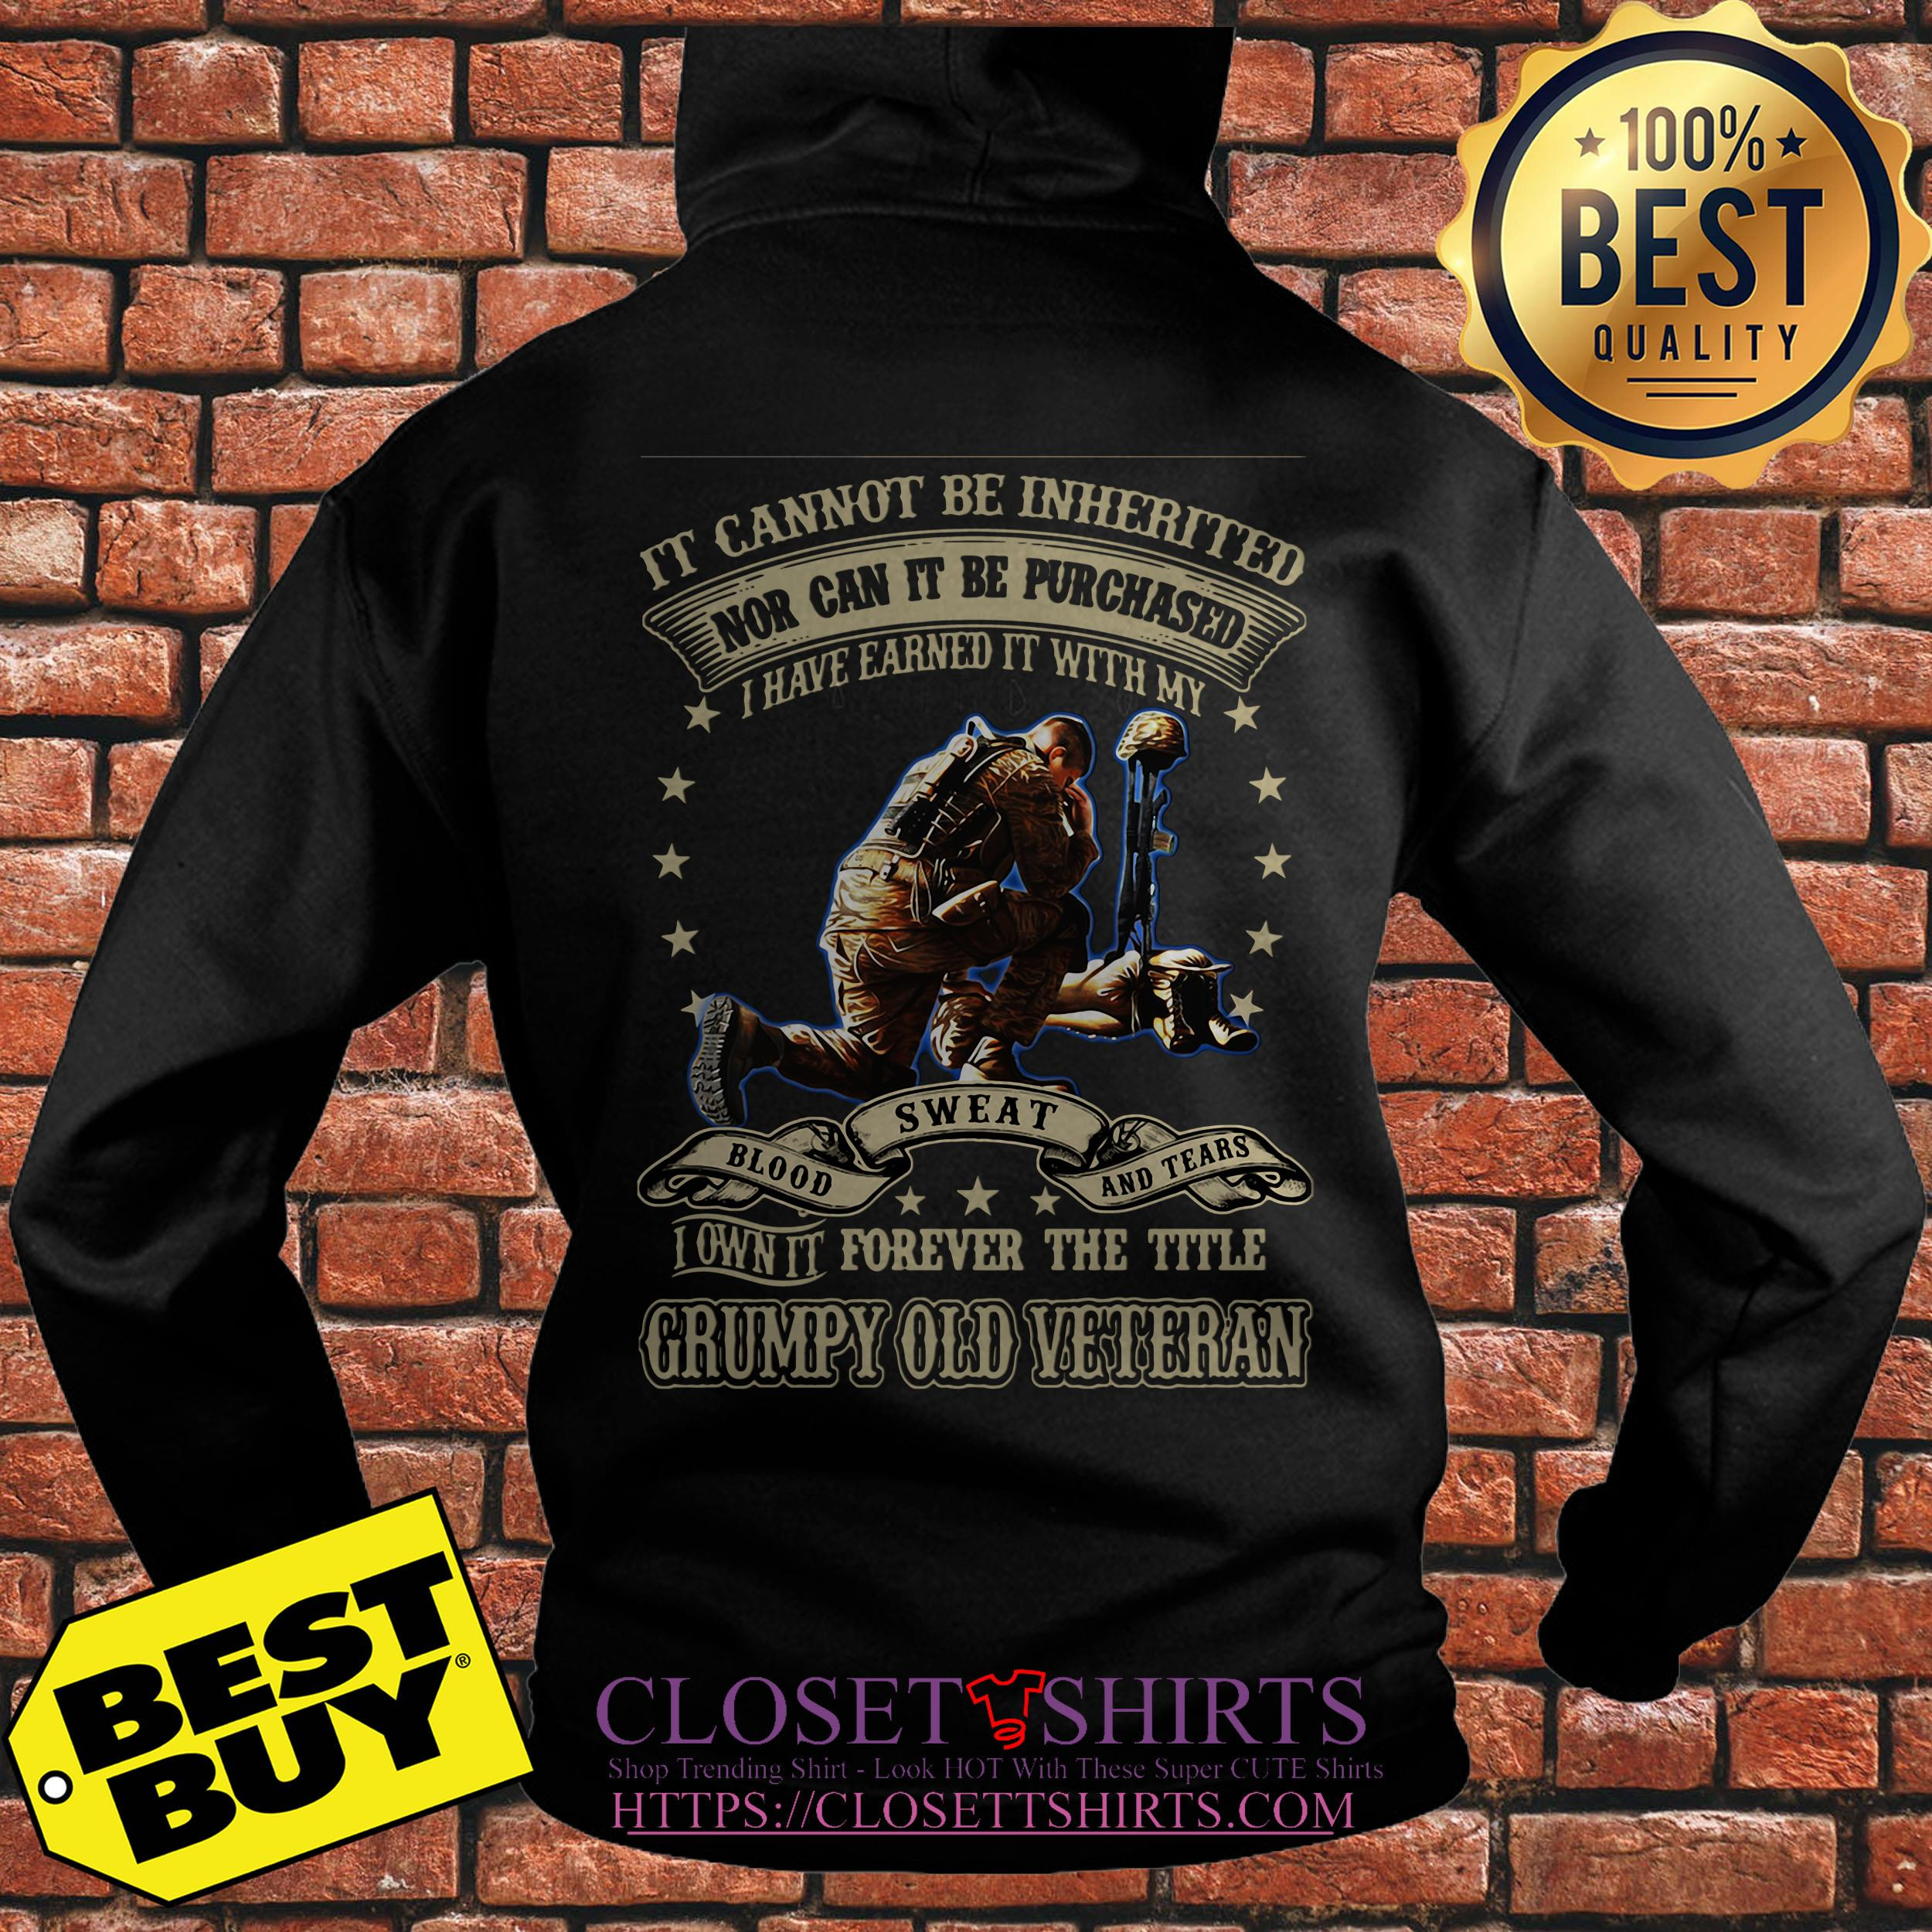 Grumpy Old Veteran It Cannot Be Inherited Nor Can It Be Purchased hoodie